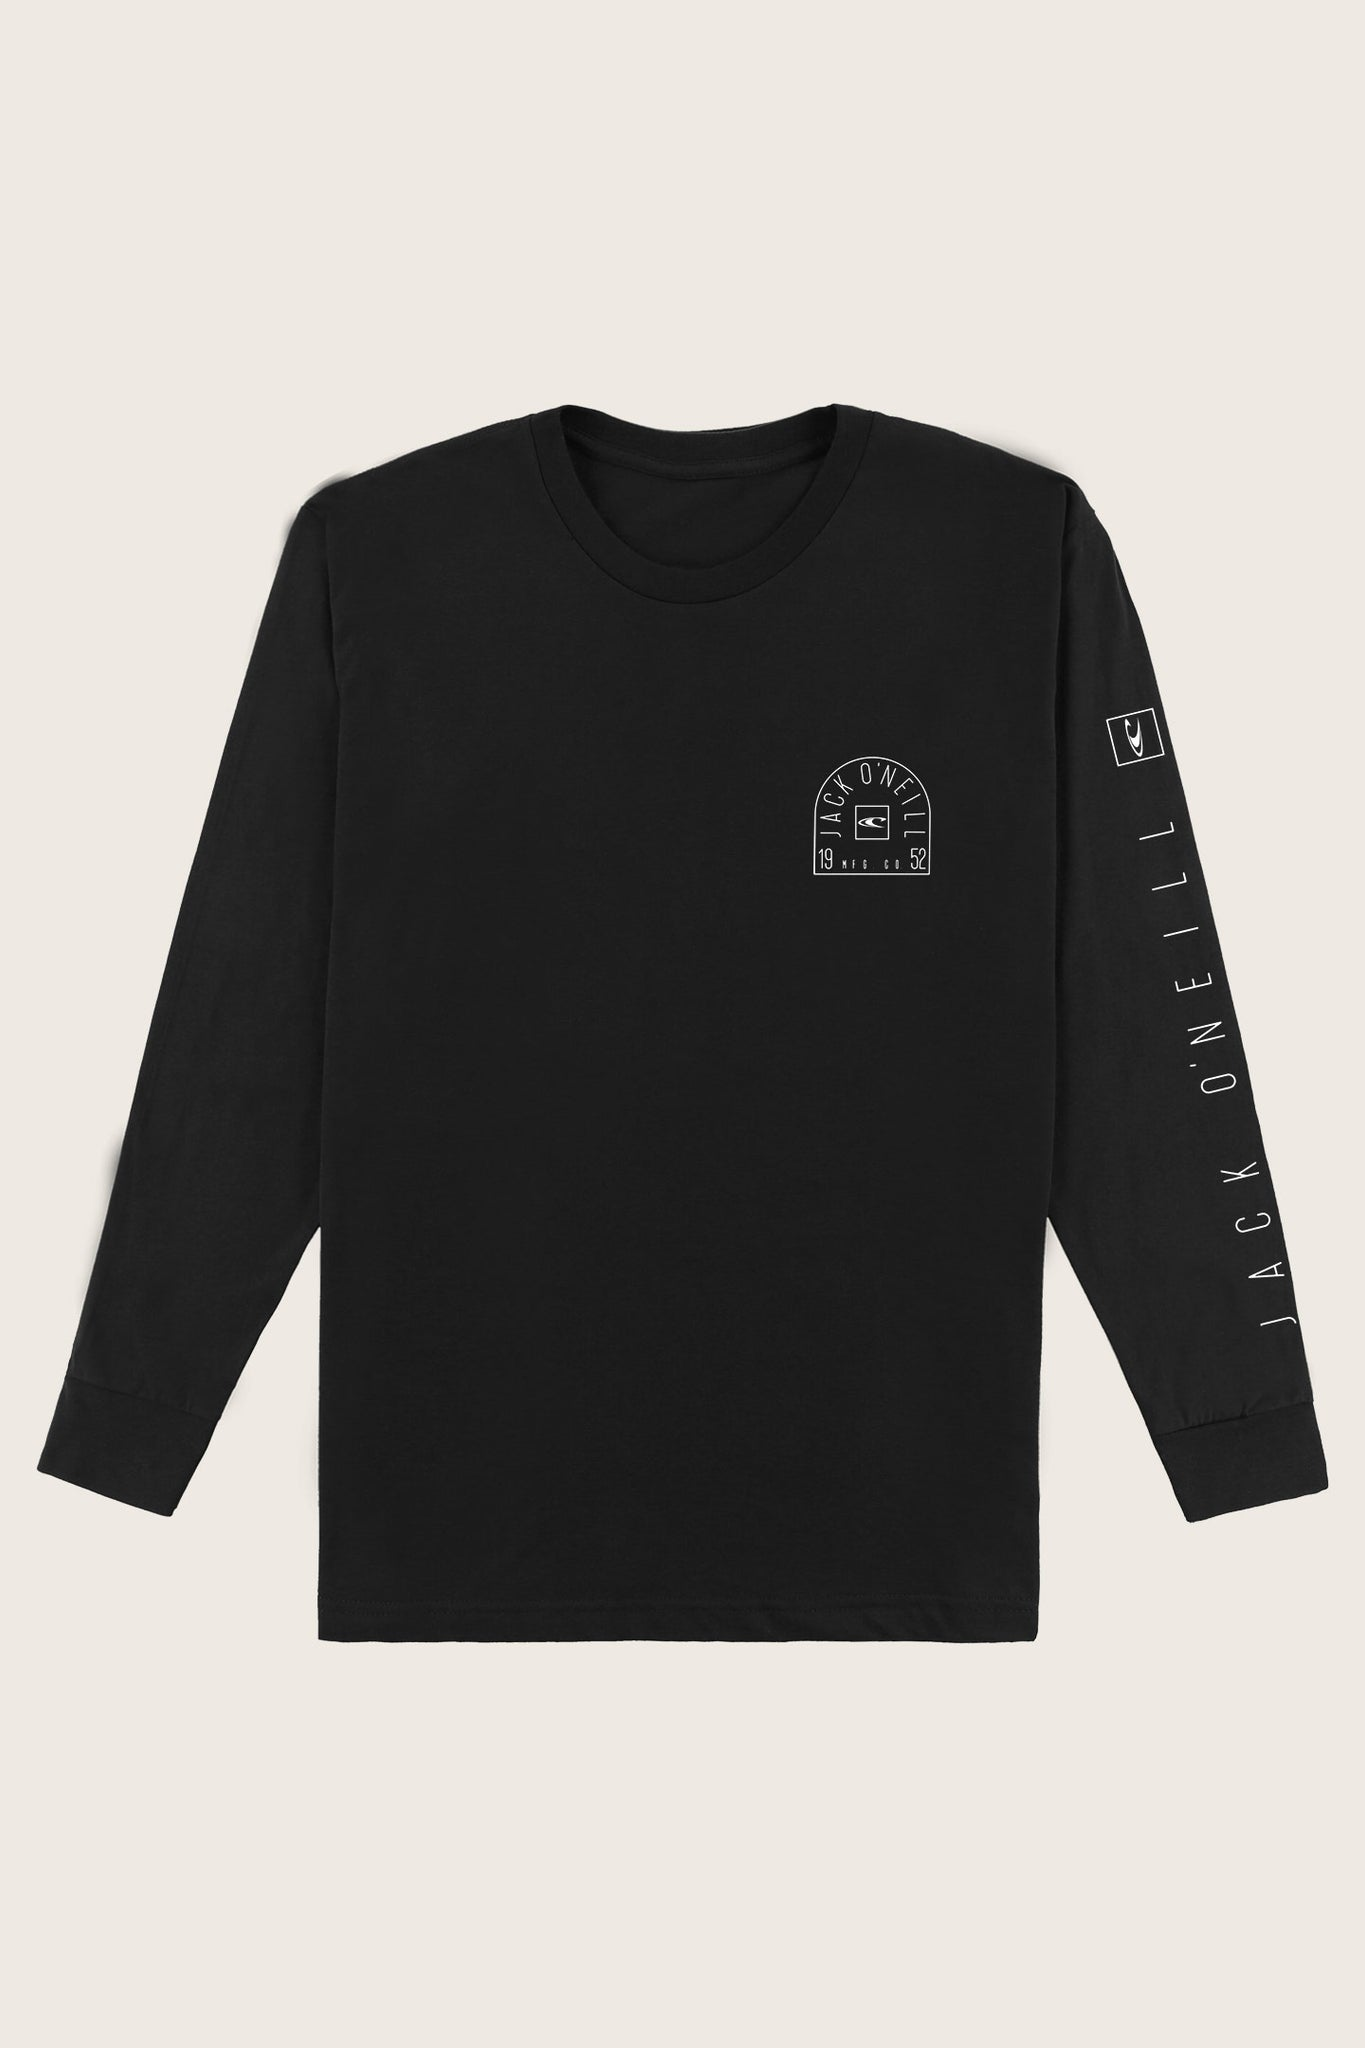 JACK O'NEILL LONG SLEEVE CHARGER TEE